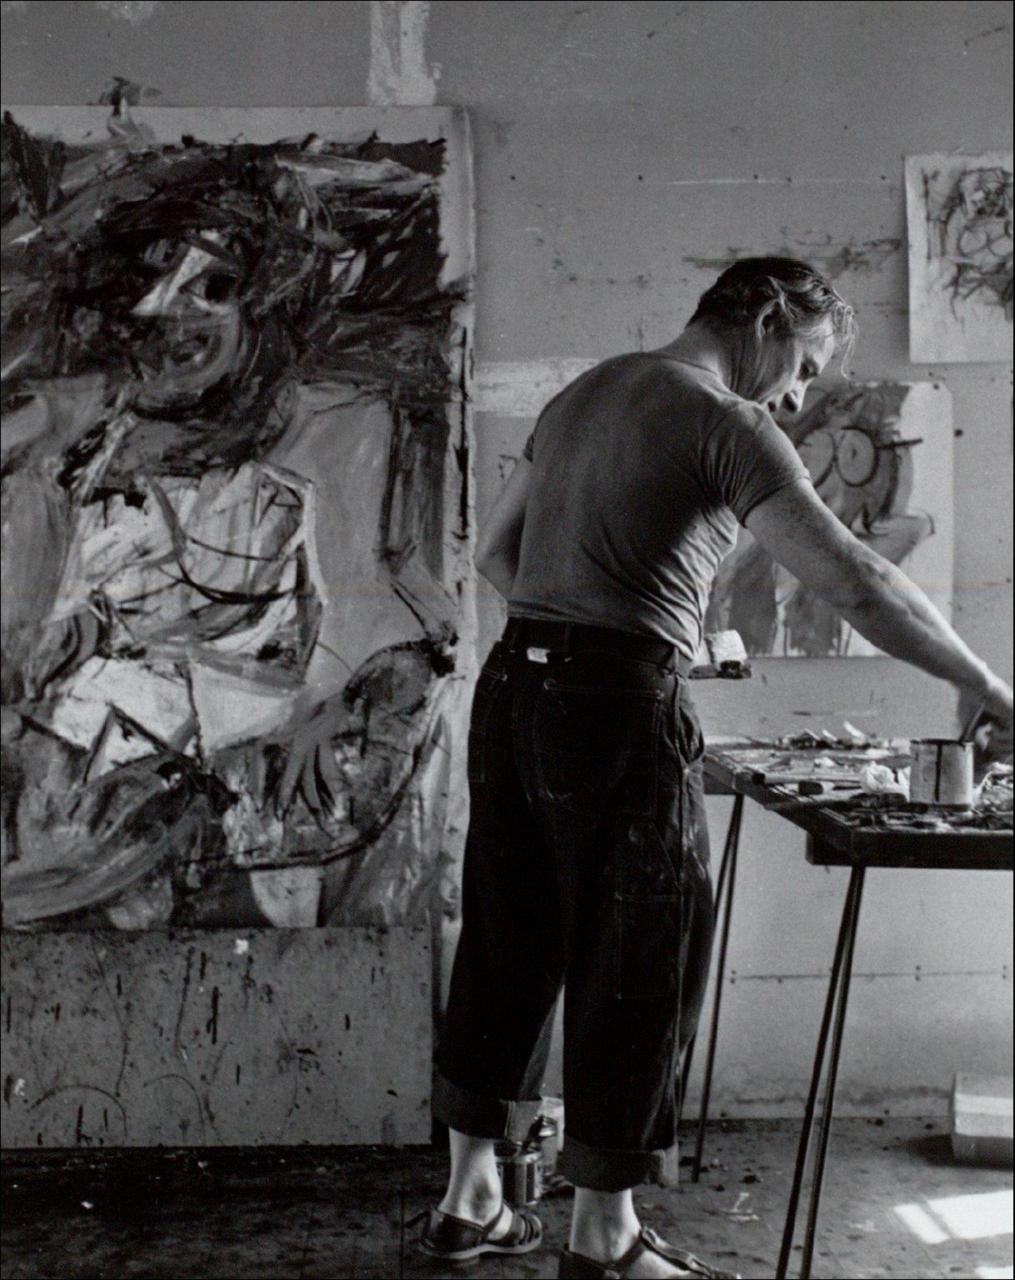 texturism:Willem de Kooning in 1952